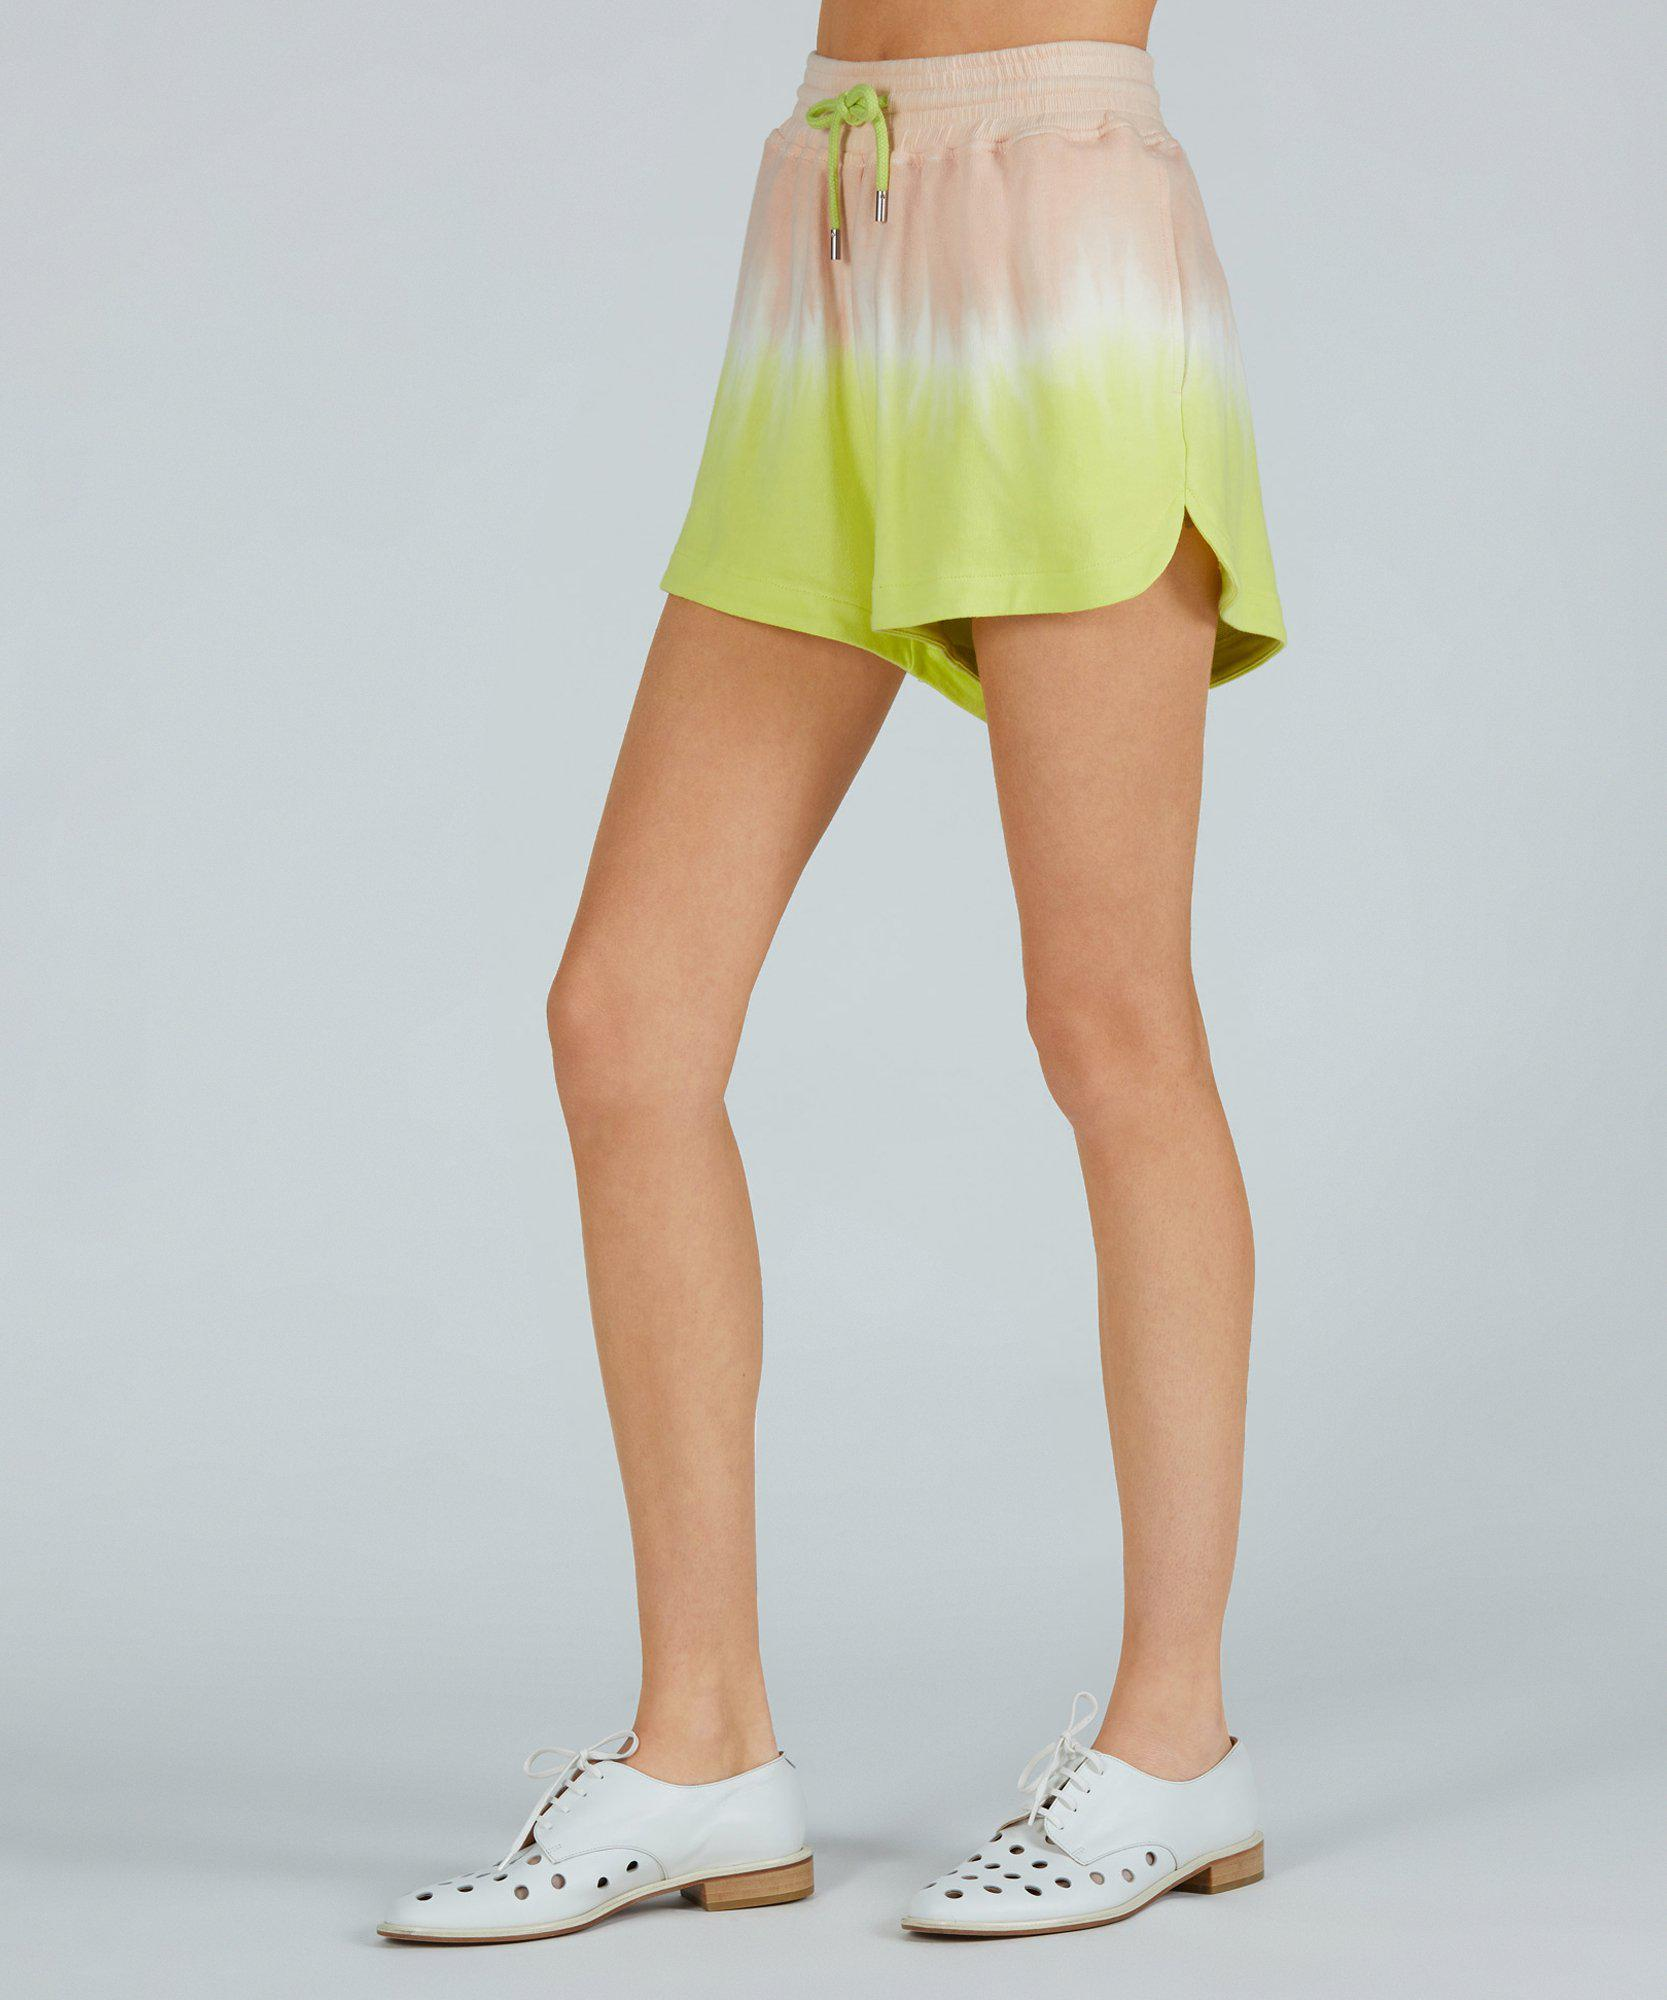 French Terry Pull-On Short - Shell Combo Dip Dye 1